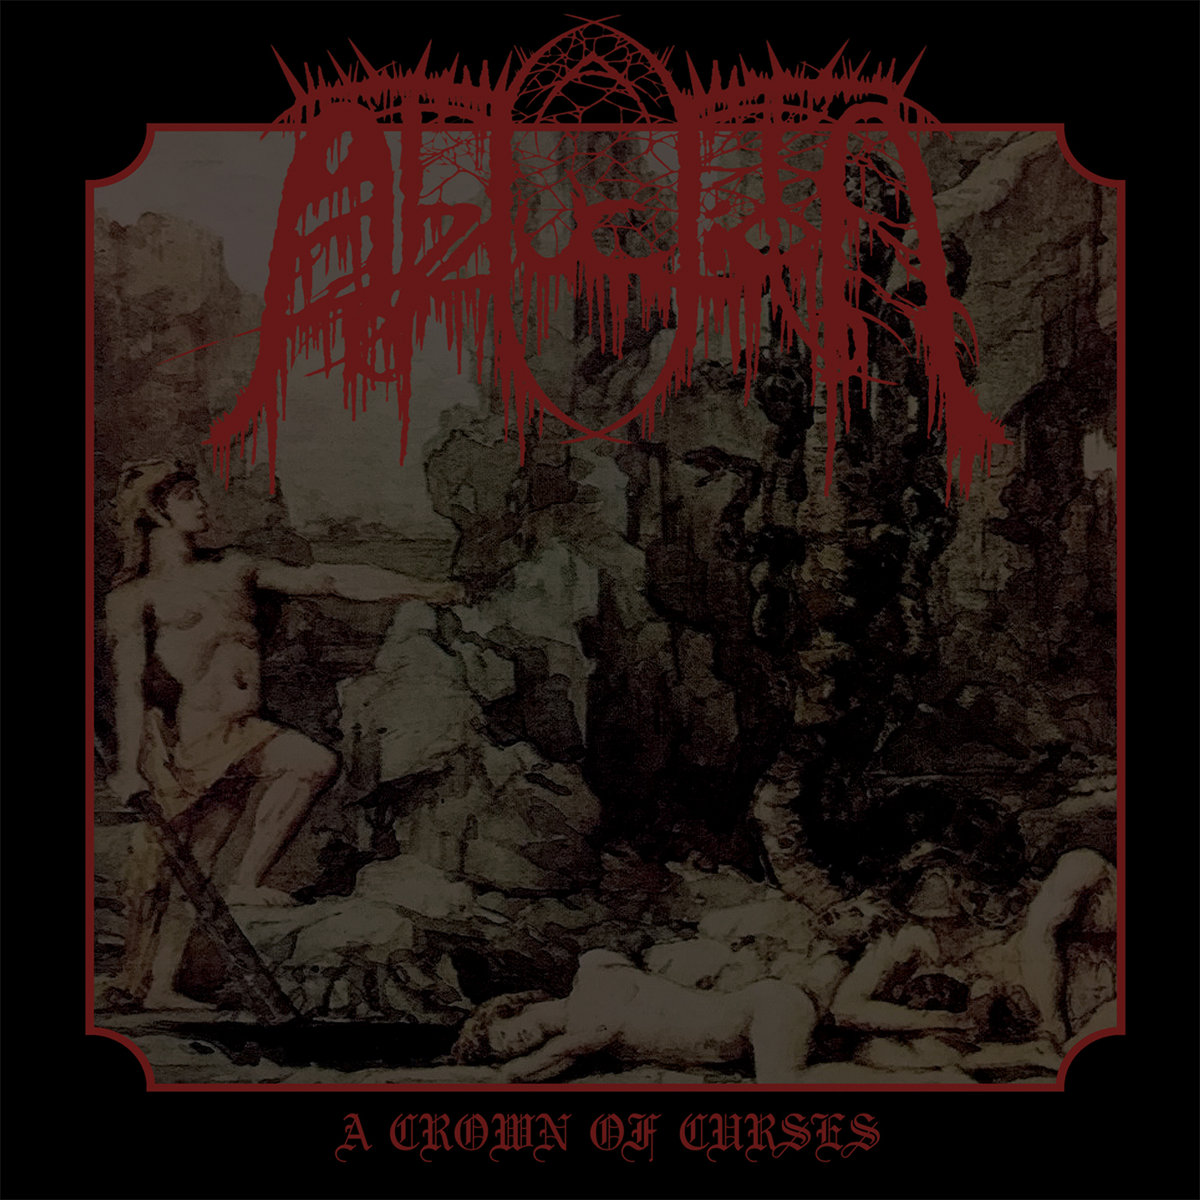 8. A Crown Of Curses by Abduction - Continuing in the same vein of atmospheric agony and black metal voids of oblivion, except we're taking the 2-piece band down to ONE, with Crown of Curses by Abduction. Yes, Abduction is a UK-Based, solo artist, black metal project… and it's absolutely killer. Released by the great Death Kvlt Productions, a UK underground record label specializing in black metal cassettes and obscure, evil, releases such as this. Crown of Curses is a devilishly hypnotic trip into the realms beyond our own, and the sounds generated by just one man are beyond impressive on here as it sounds like an army of demons conjured it. Also, it rules.